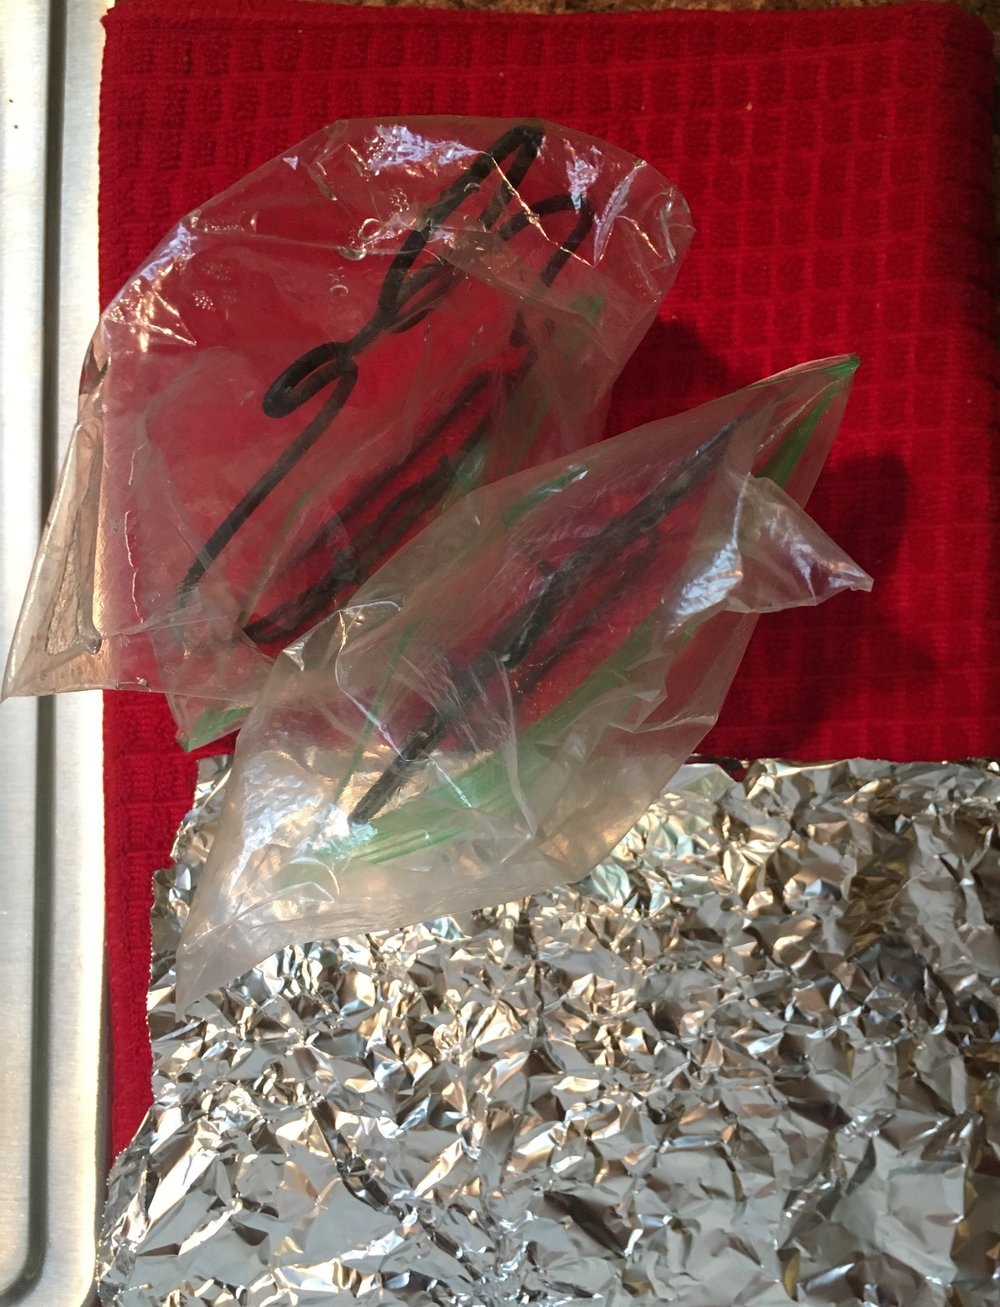 Cleaned plastic bags and aluminum foil for reuse